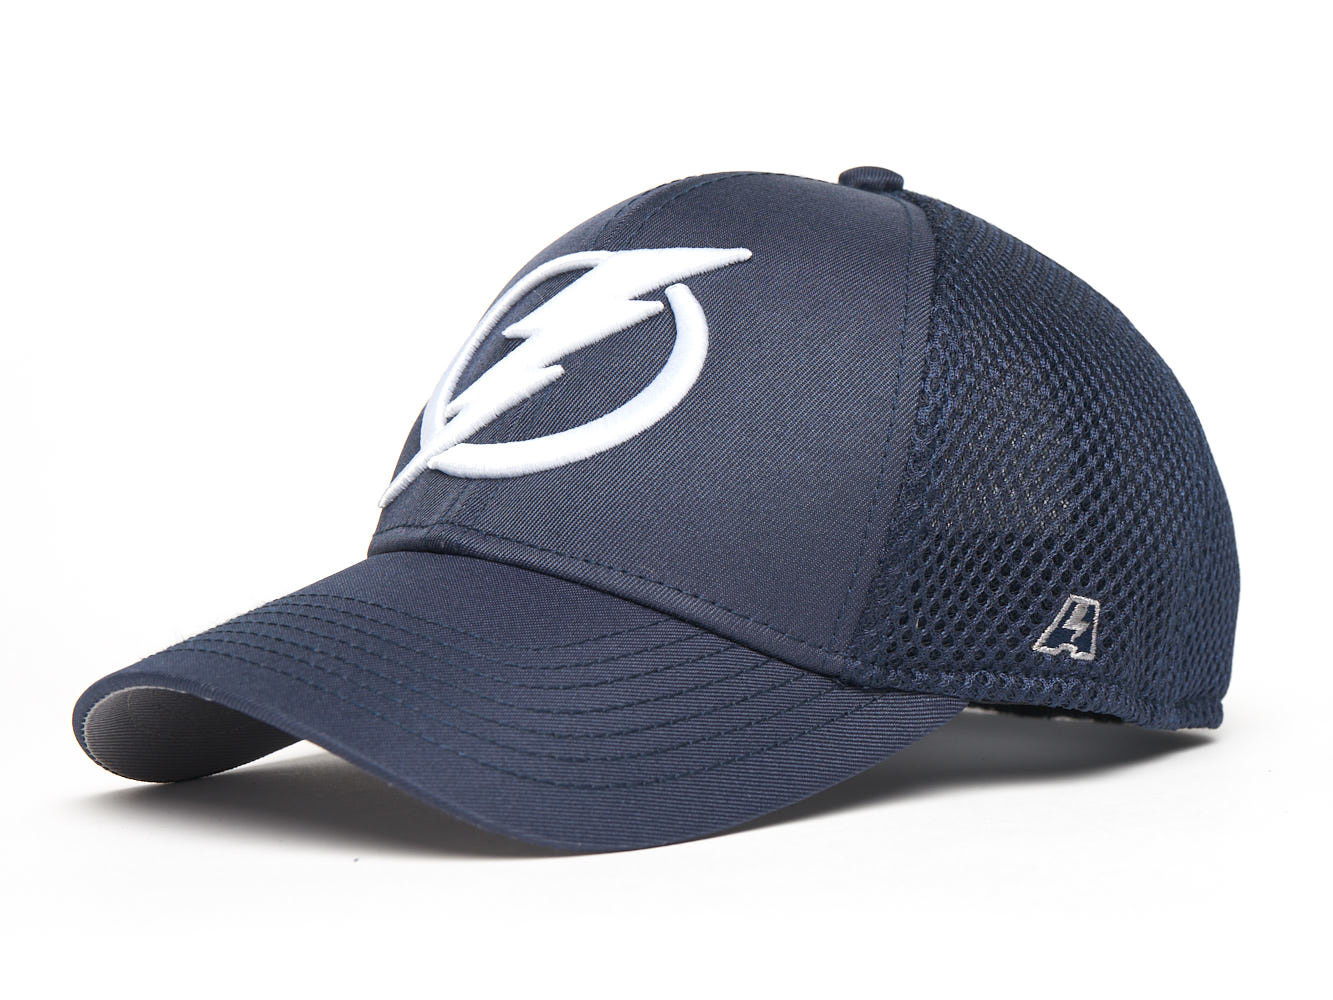 Бейсболка NHL Tampa Bay Lightning (размер L/XL)